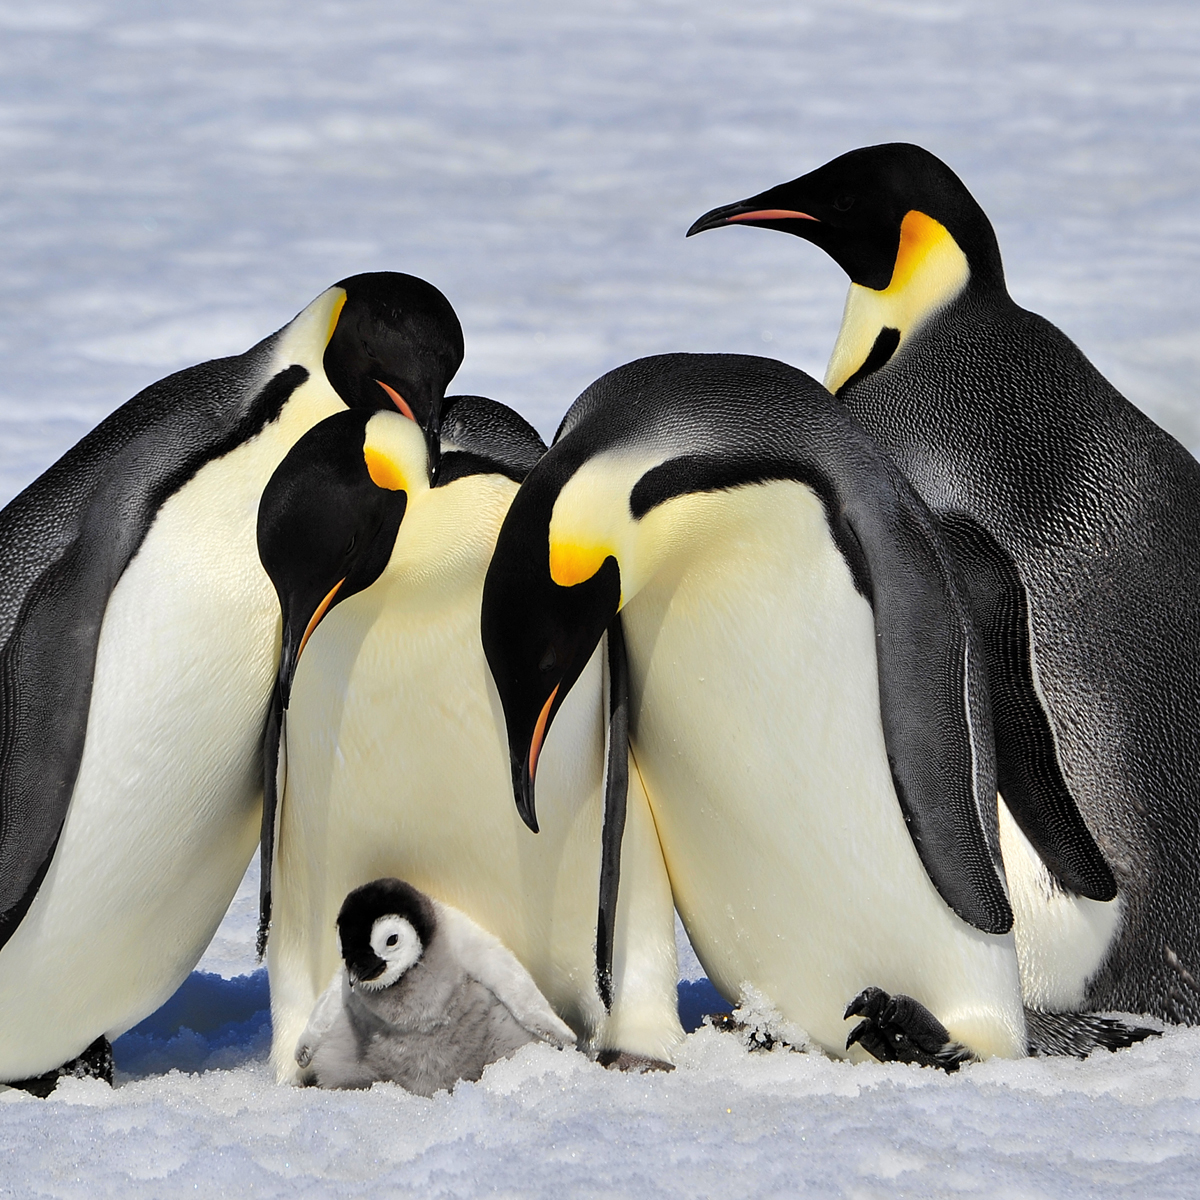 Baby emperor penguin stays with its parents at the polar house of - Baby Emperor Penguin Stays With Its Parents At The Polar House Of Baby Emperor Penguin Download